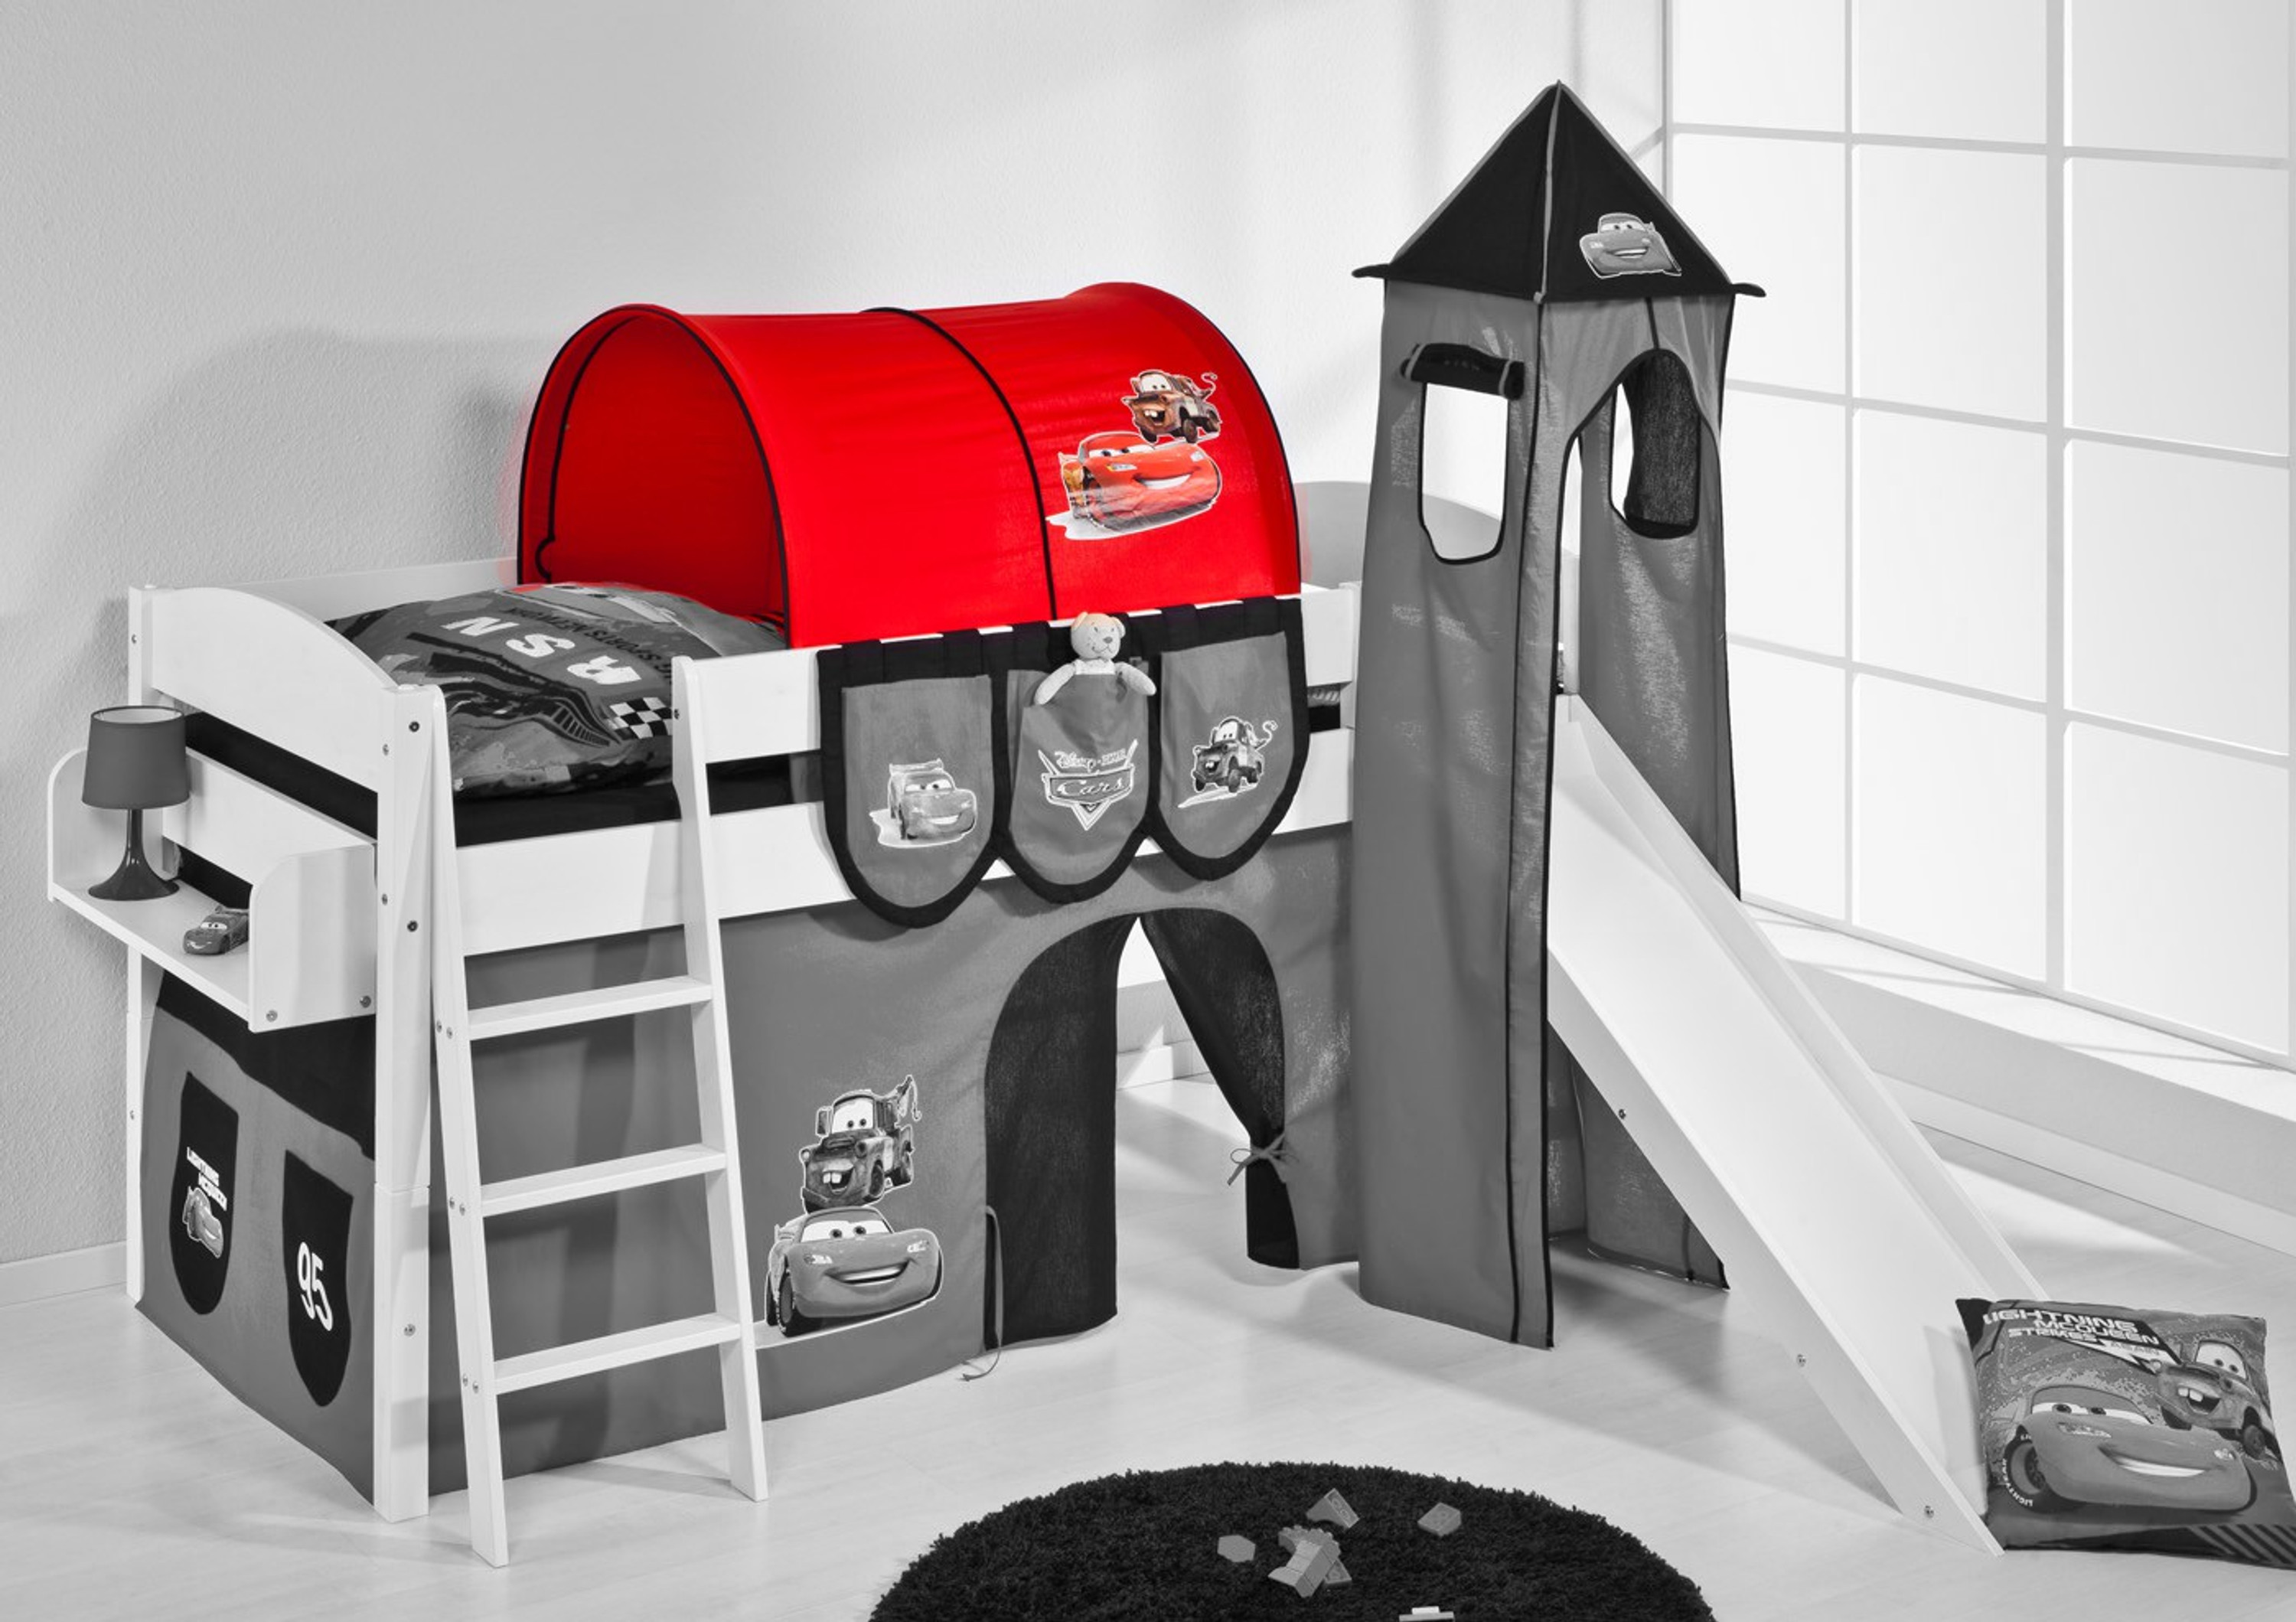 tunnel disney cars f r hochbett spielbett und etagenbett m bel baby kinderzimmer zubeh r. Black Bedroom Furniture Sets. Home Design Ideas